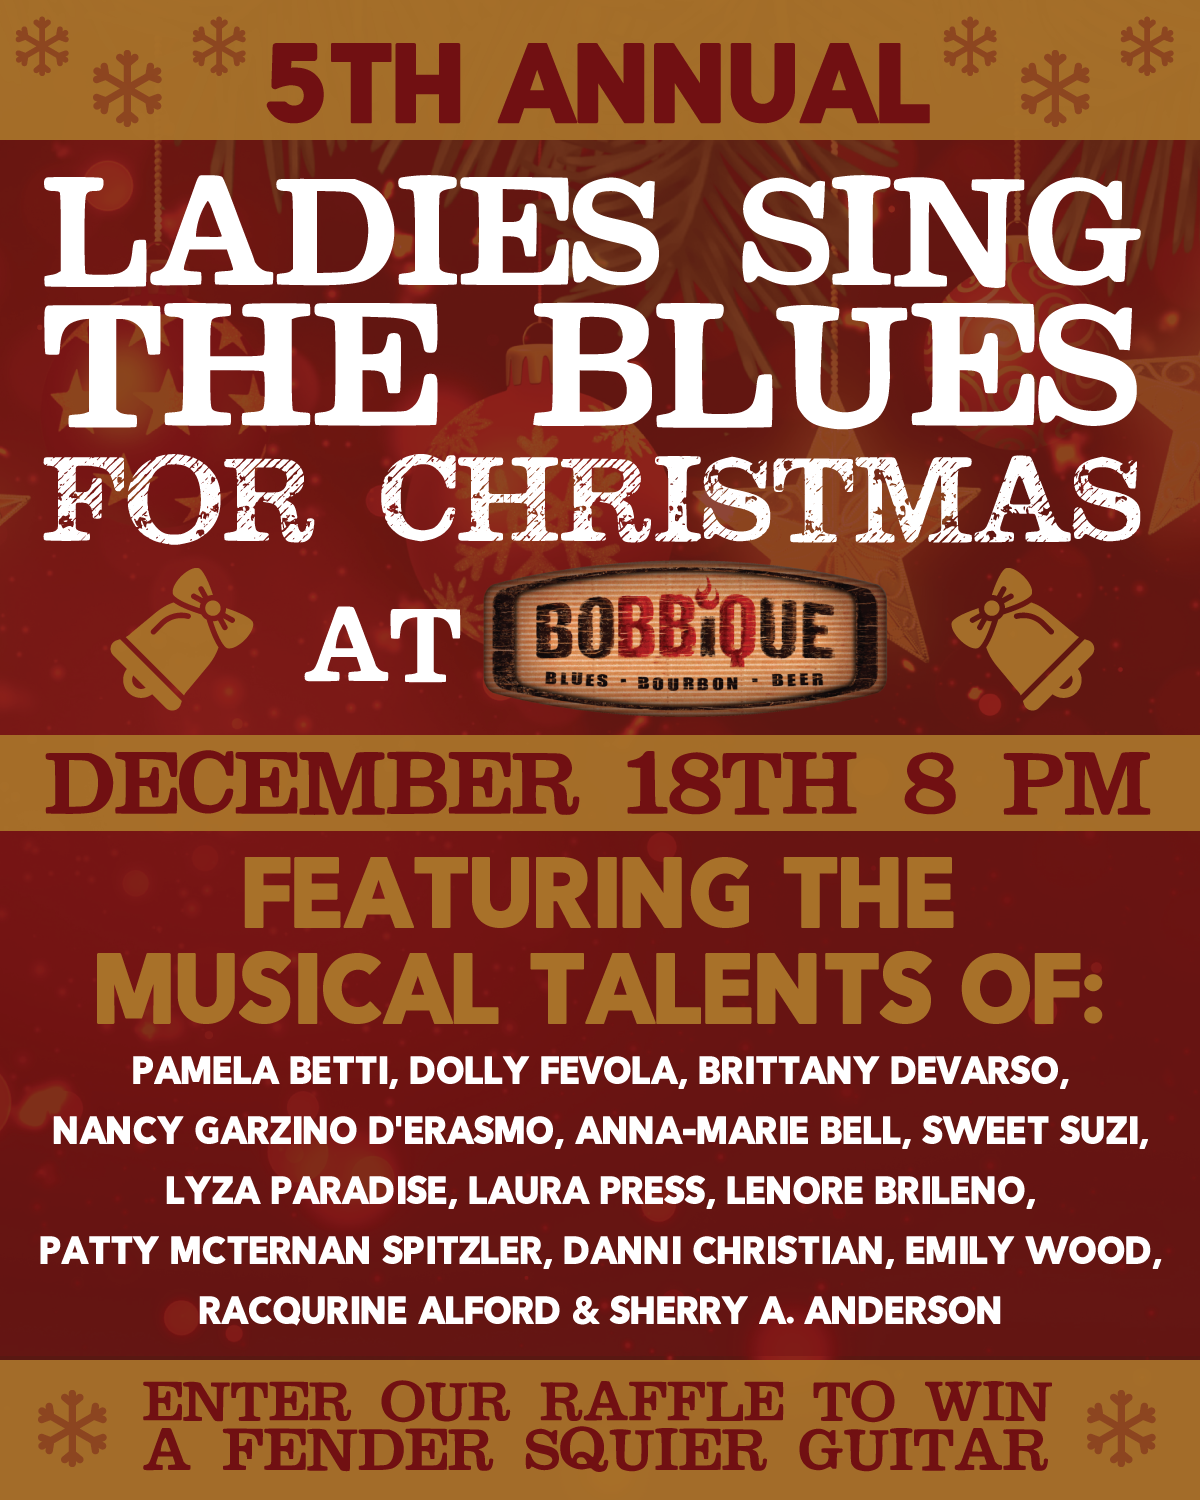 Ladies Sing the Blues for Christmas